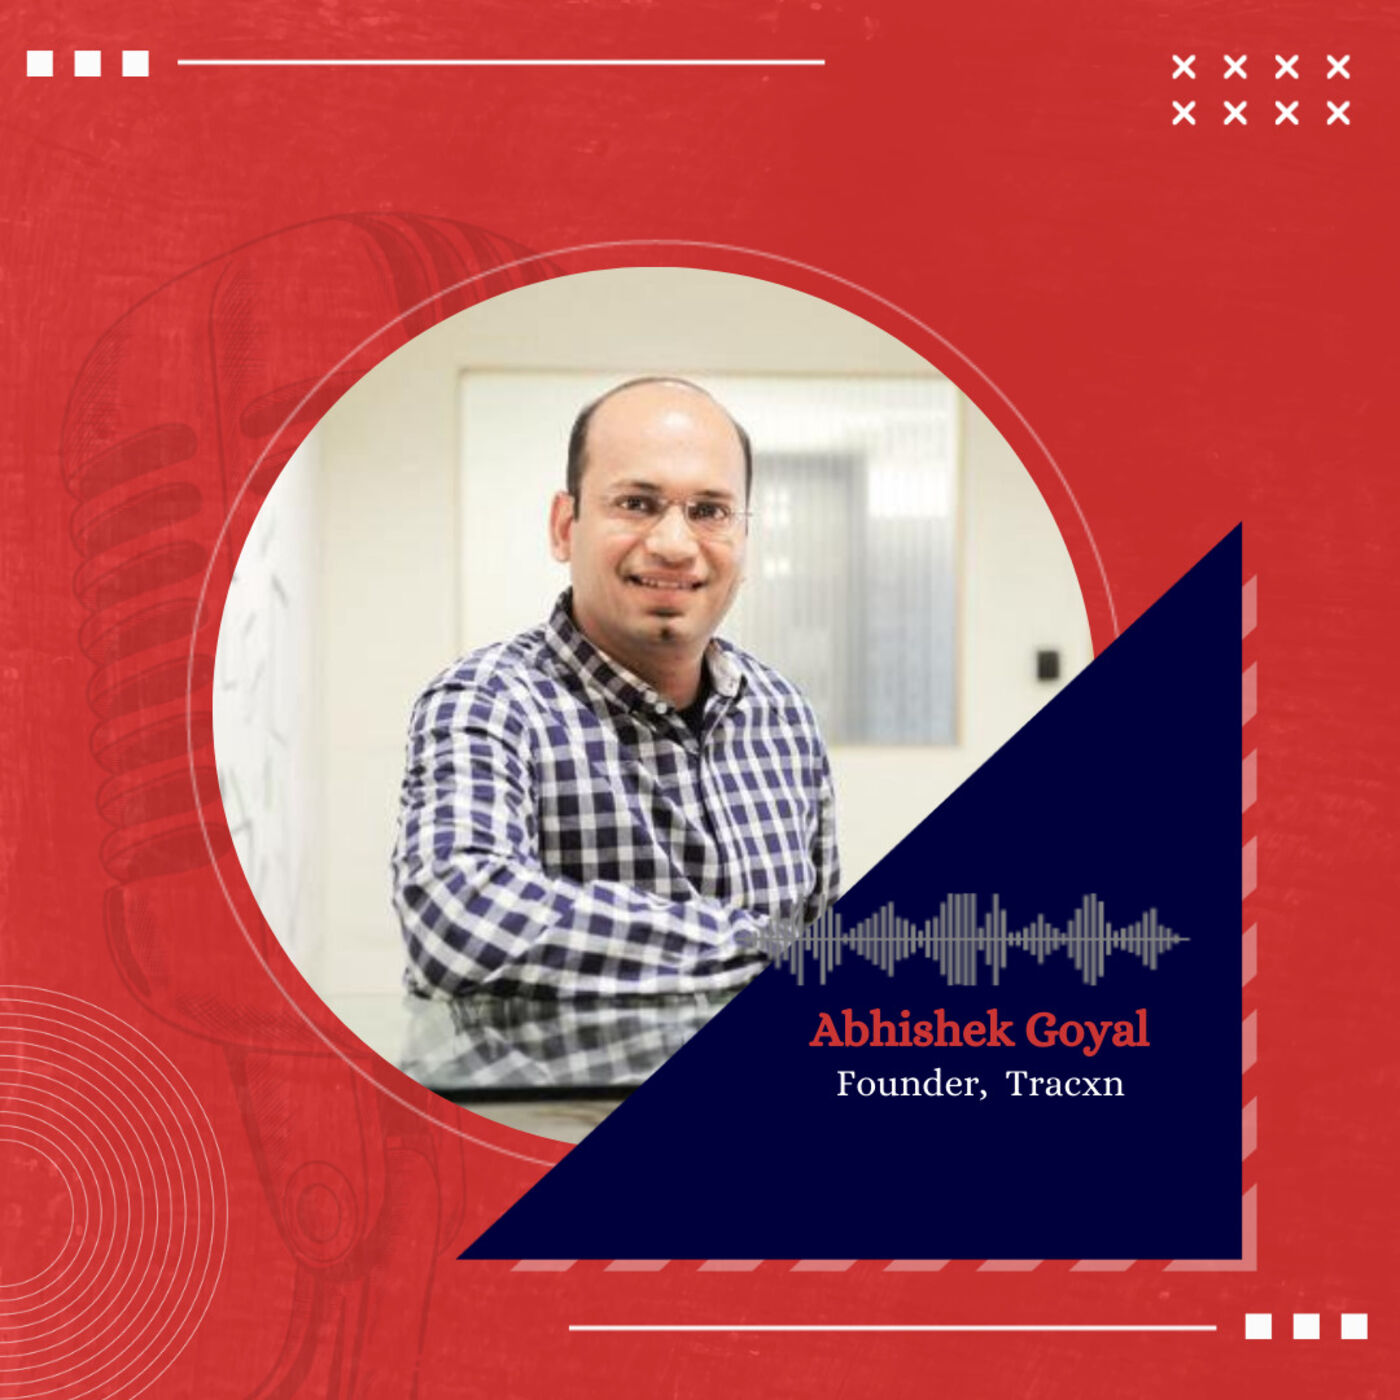 Abhishek Goyal, Co-Founder, Tracxn on angel investing in 130 startups in the last 10 years